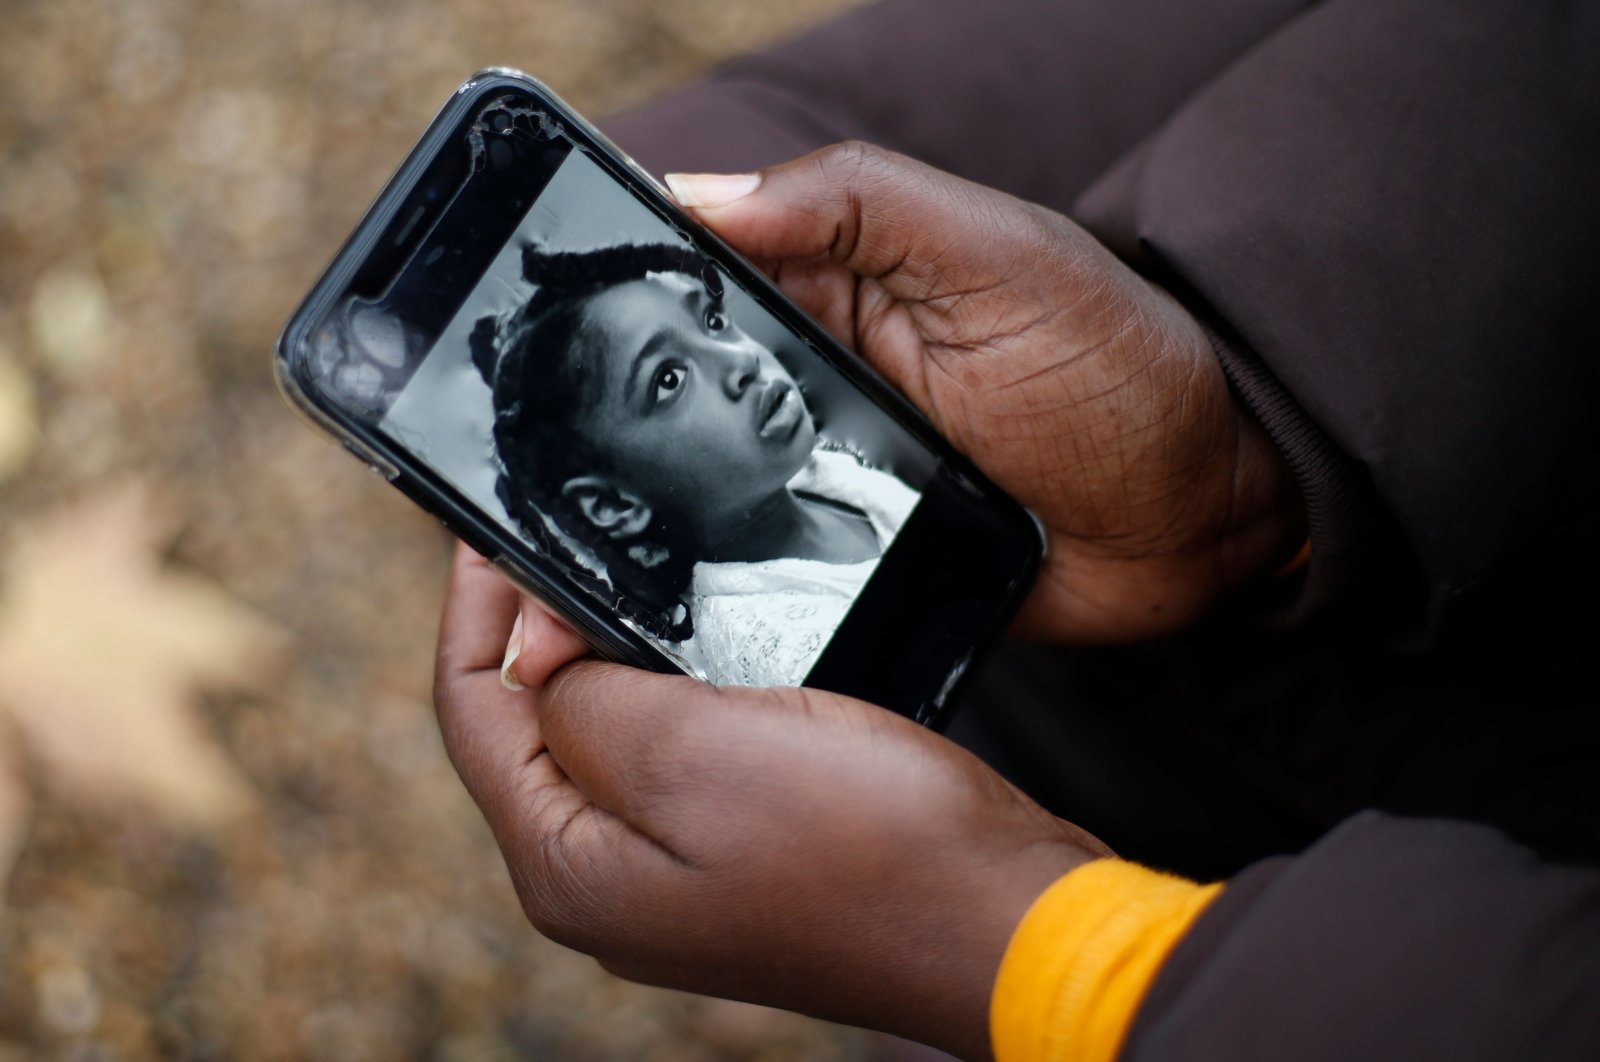 Rosamund Adoo-Kissi-Debrah holds her mobile phone displaying a photograph of her daughter Ella Adoo-Kissi-Debrah who died in February 2013 from a severe asthma attack, ahead of the opening of a coroner's inquest into the girl's death in London, Britain, Nov. 30, 2020. (AFP Photo)